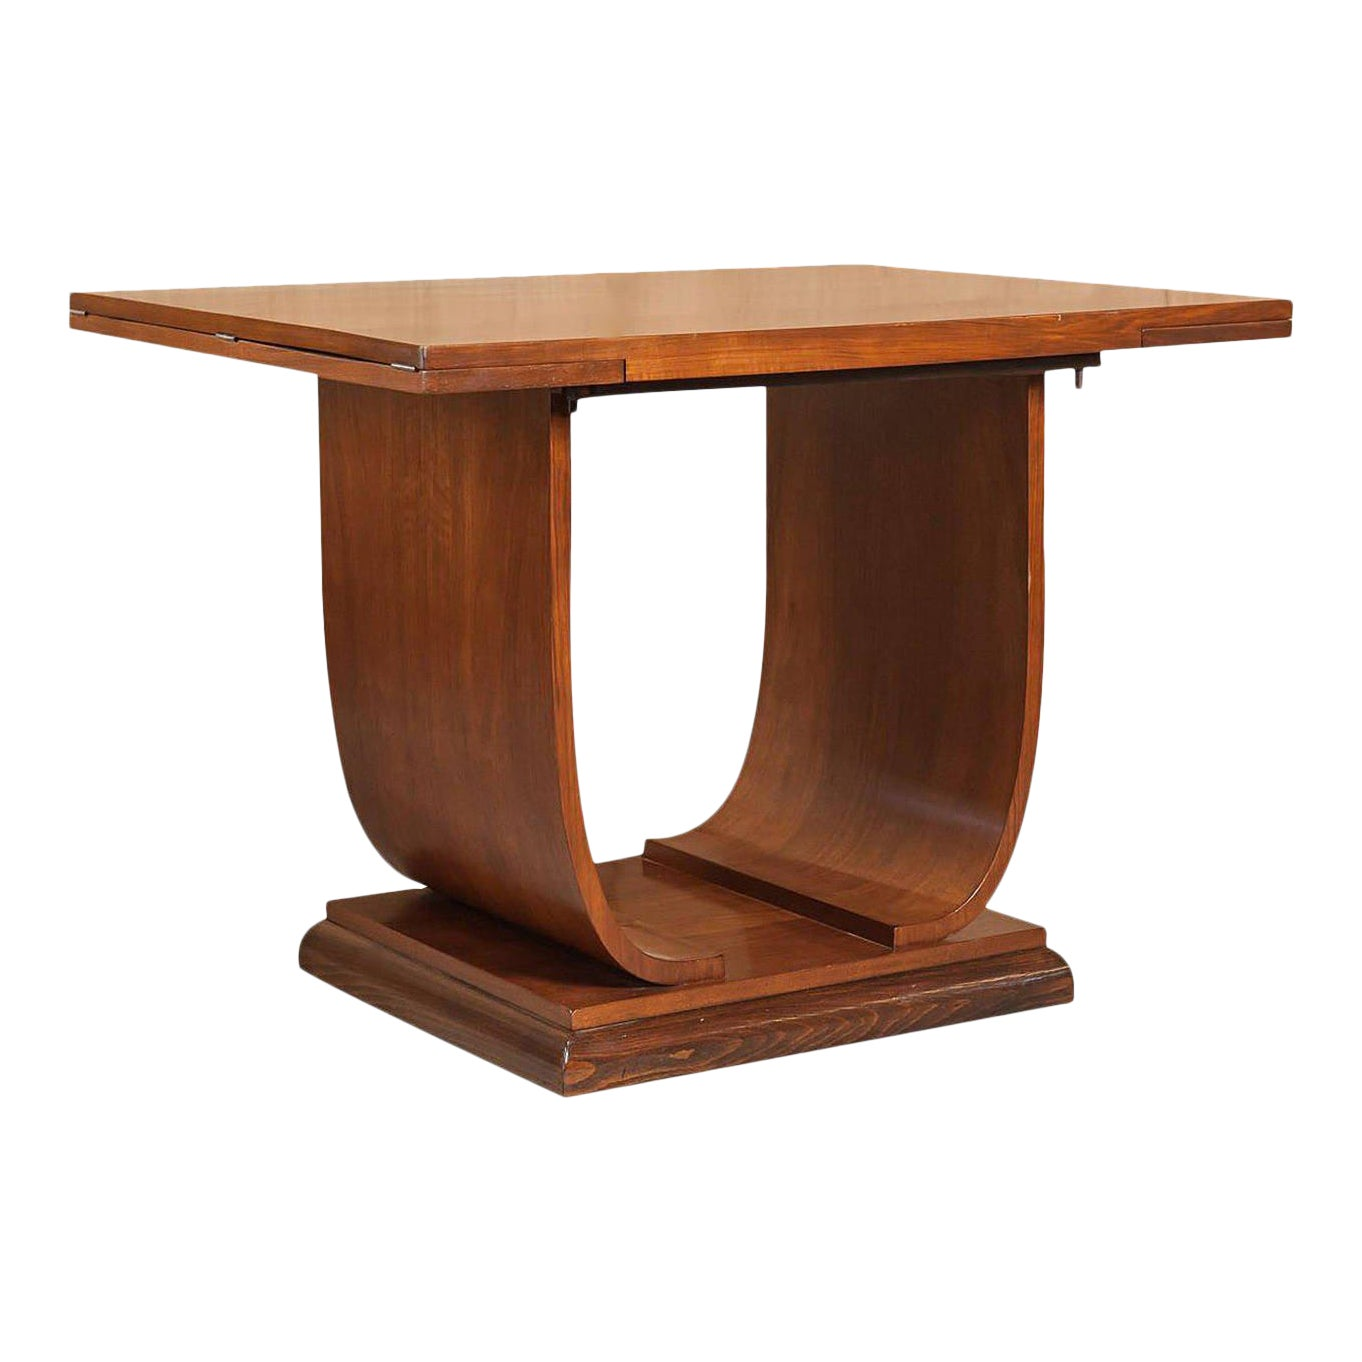 Fabulous French Art Deco Walnut Flip Top Console Table Gmtry Best Dining Table And Chair Ideas Images Gmtryco